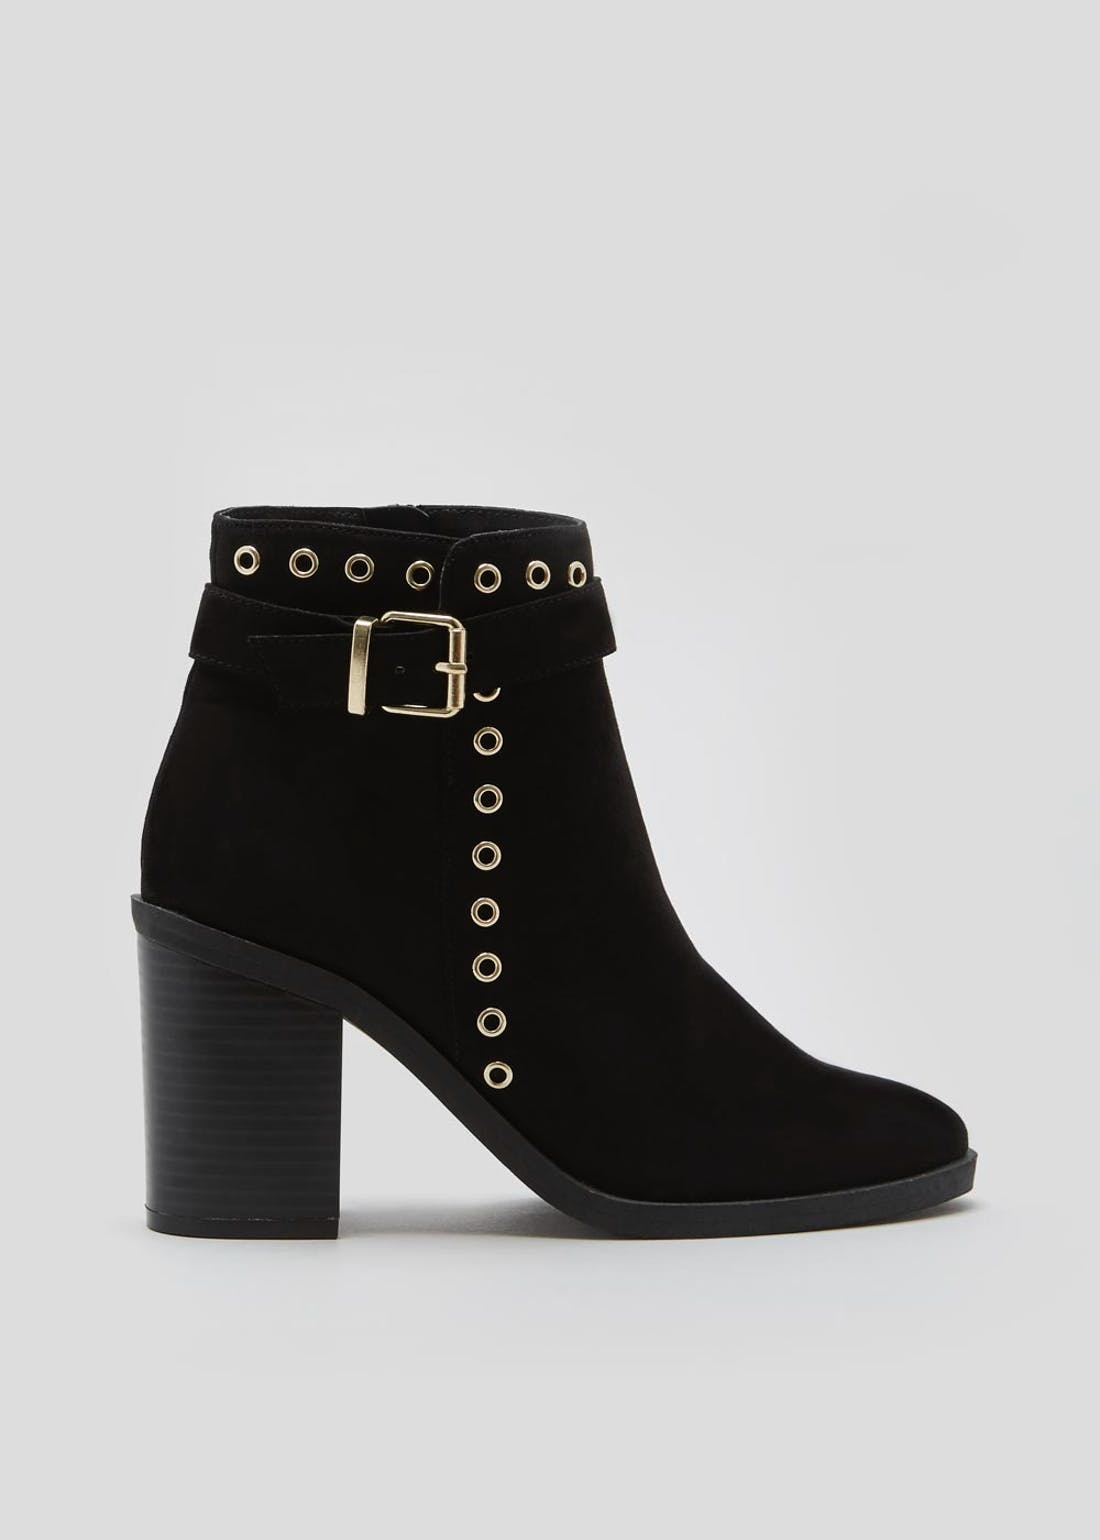 Eyelet Block Heel Ankle Boots